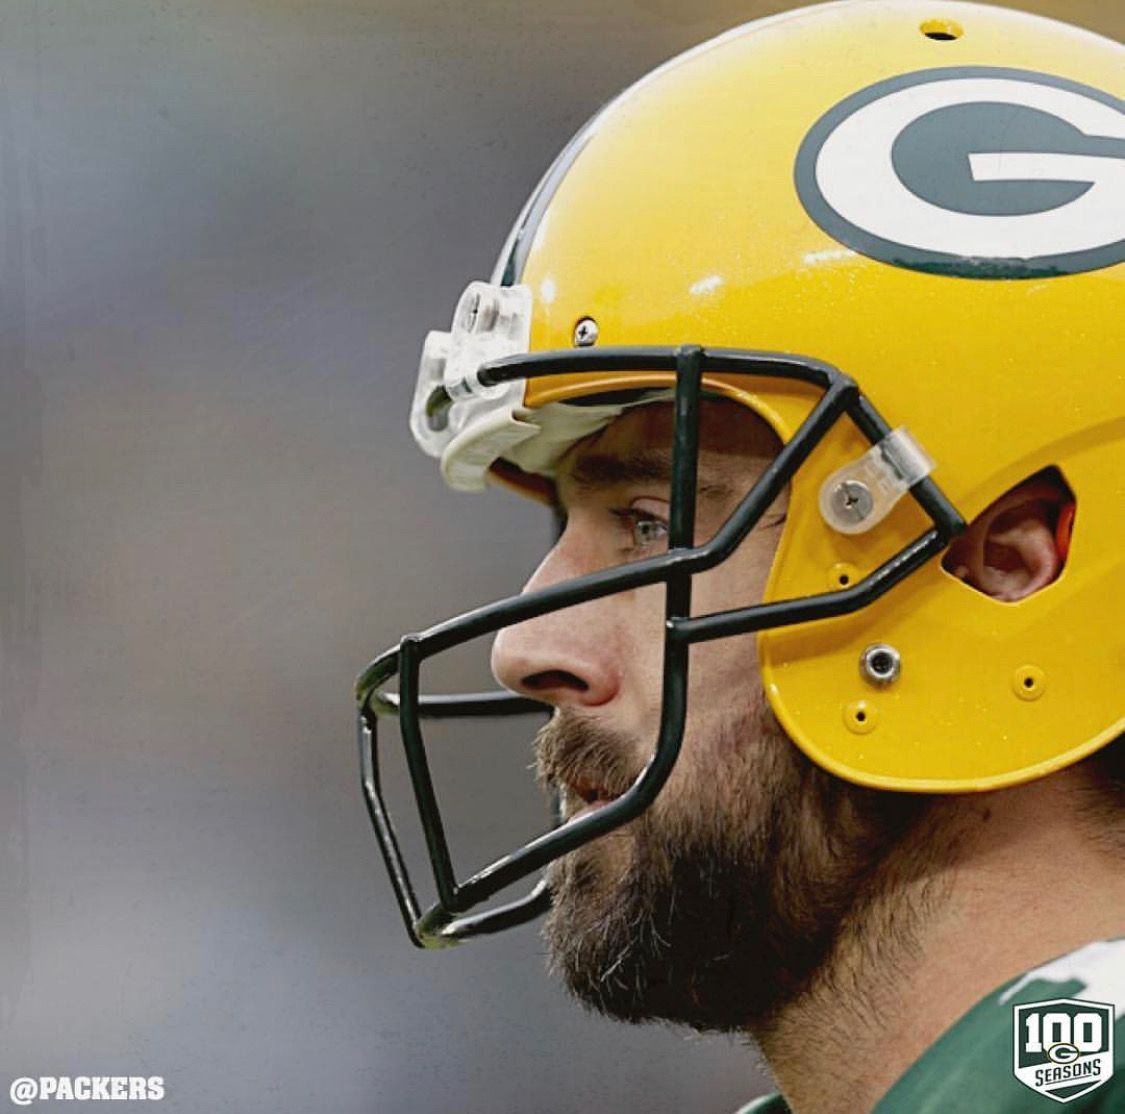 Pin By Zoster 17 On Aaron Rodgers Aaron Rodgers Green Bay Packers Football Helmets